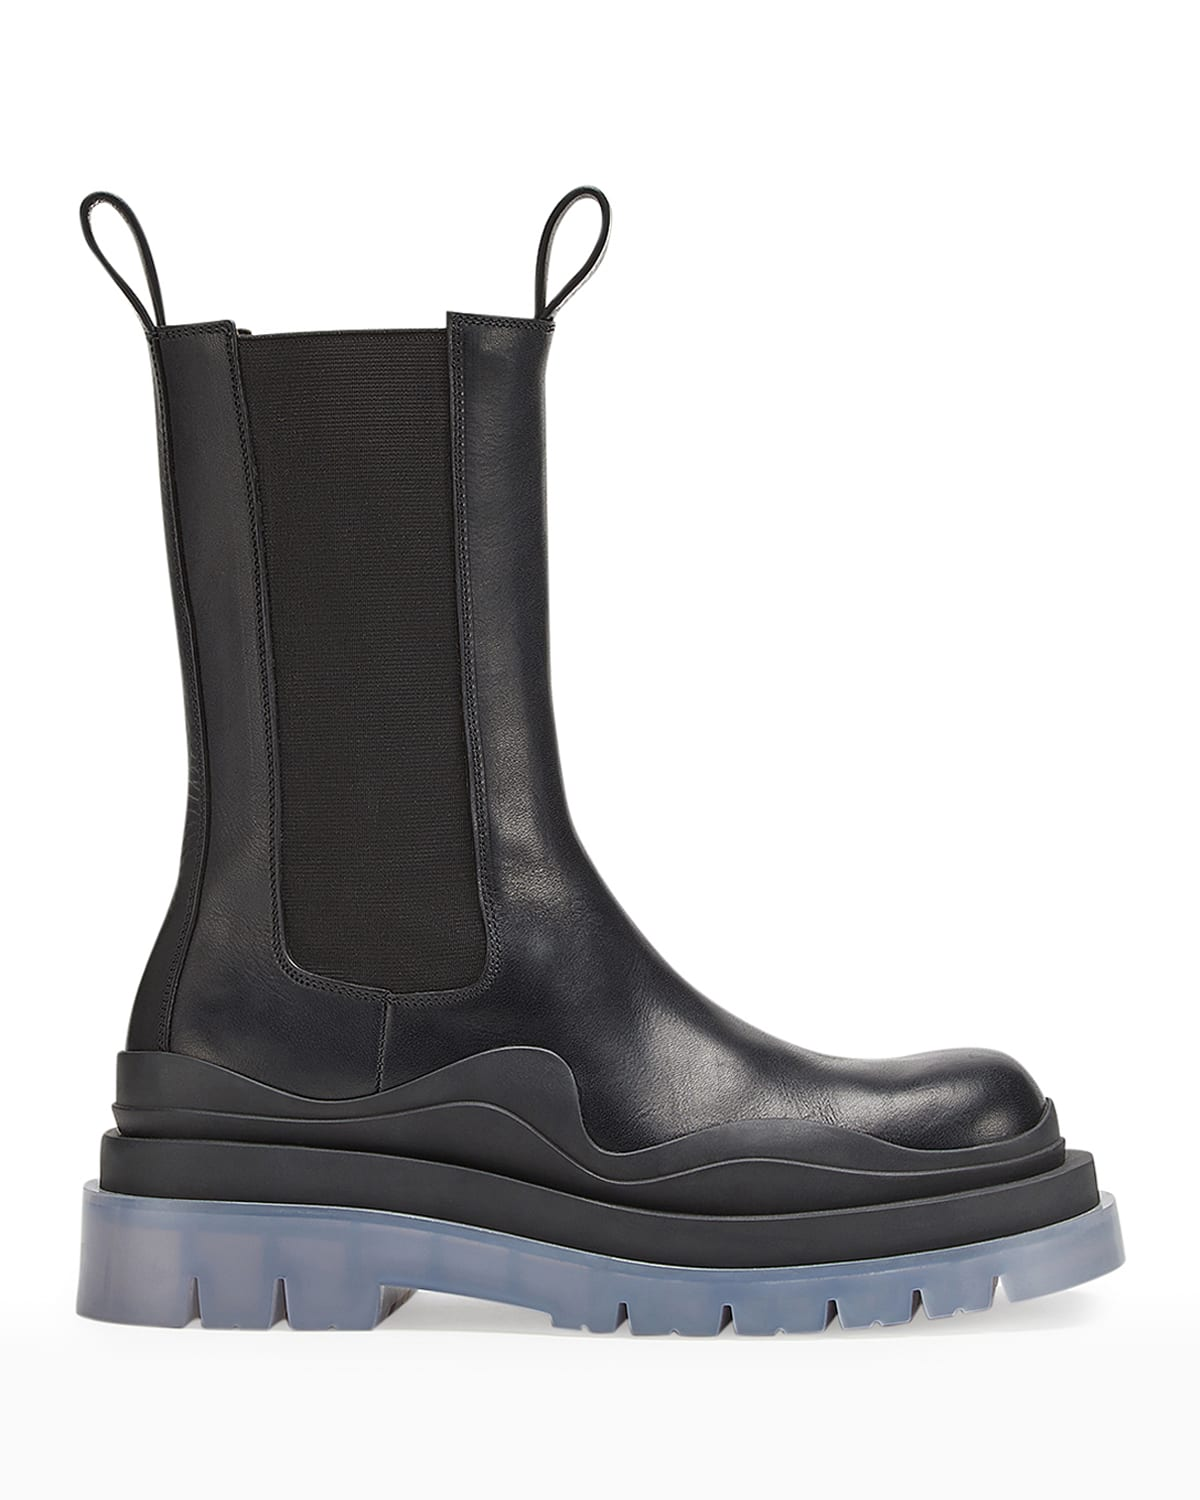 The Tire Boots